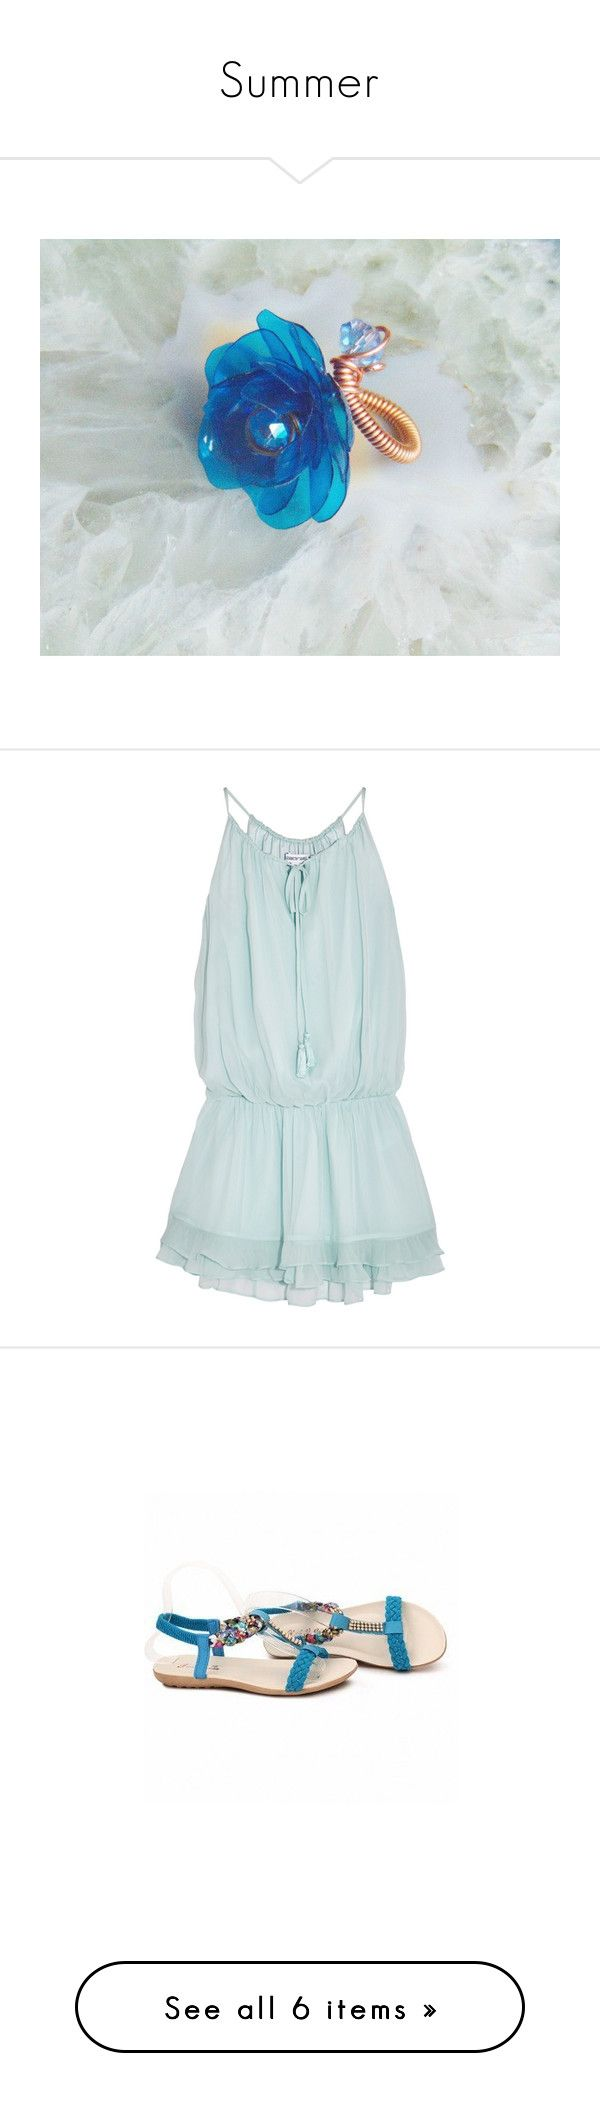 """""""Summer"""" by styledonna on Polyvore featuring dresses, light blue, light blue short dress, short blue dresses, slip on dress, elastic waist dress, light blue mini dress, shoes, sandals i t strap flats"""